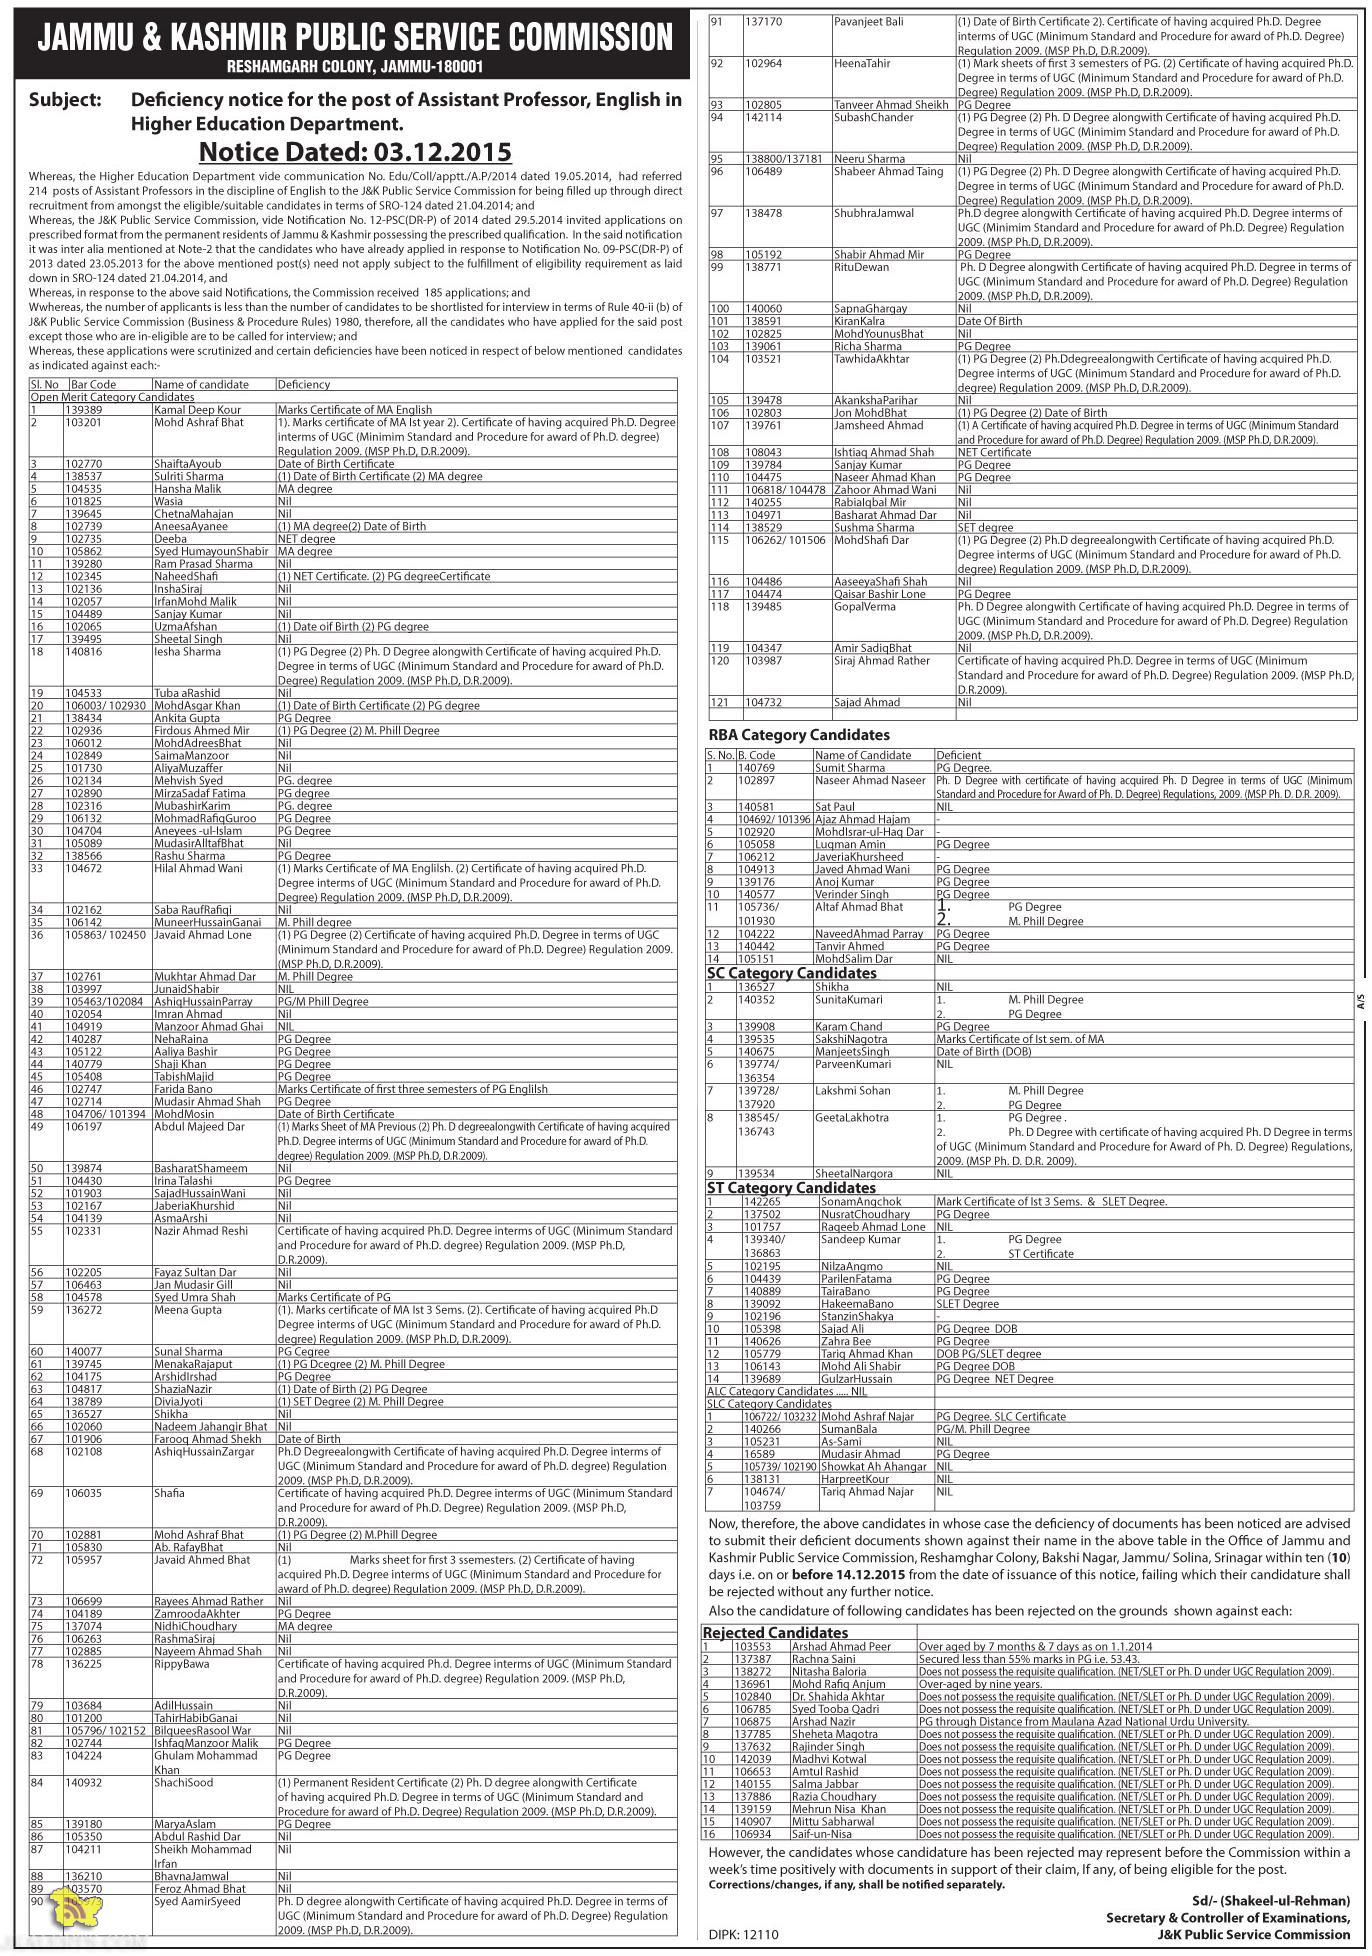 JKPSC Deficiency notice of Assistant Professor, English in Higher Education Department.